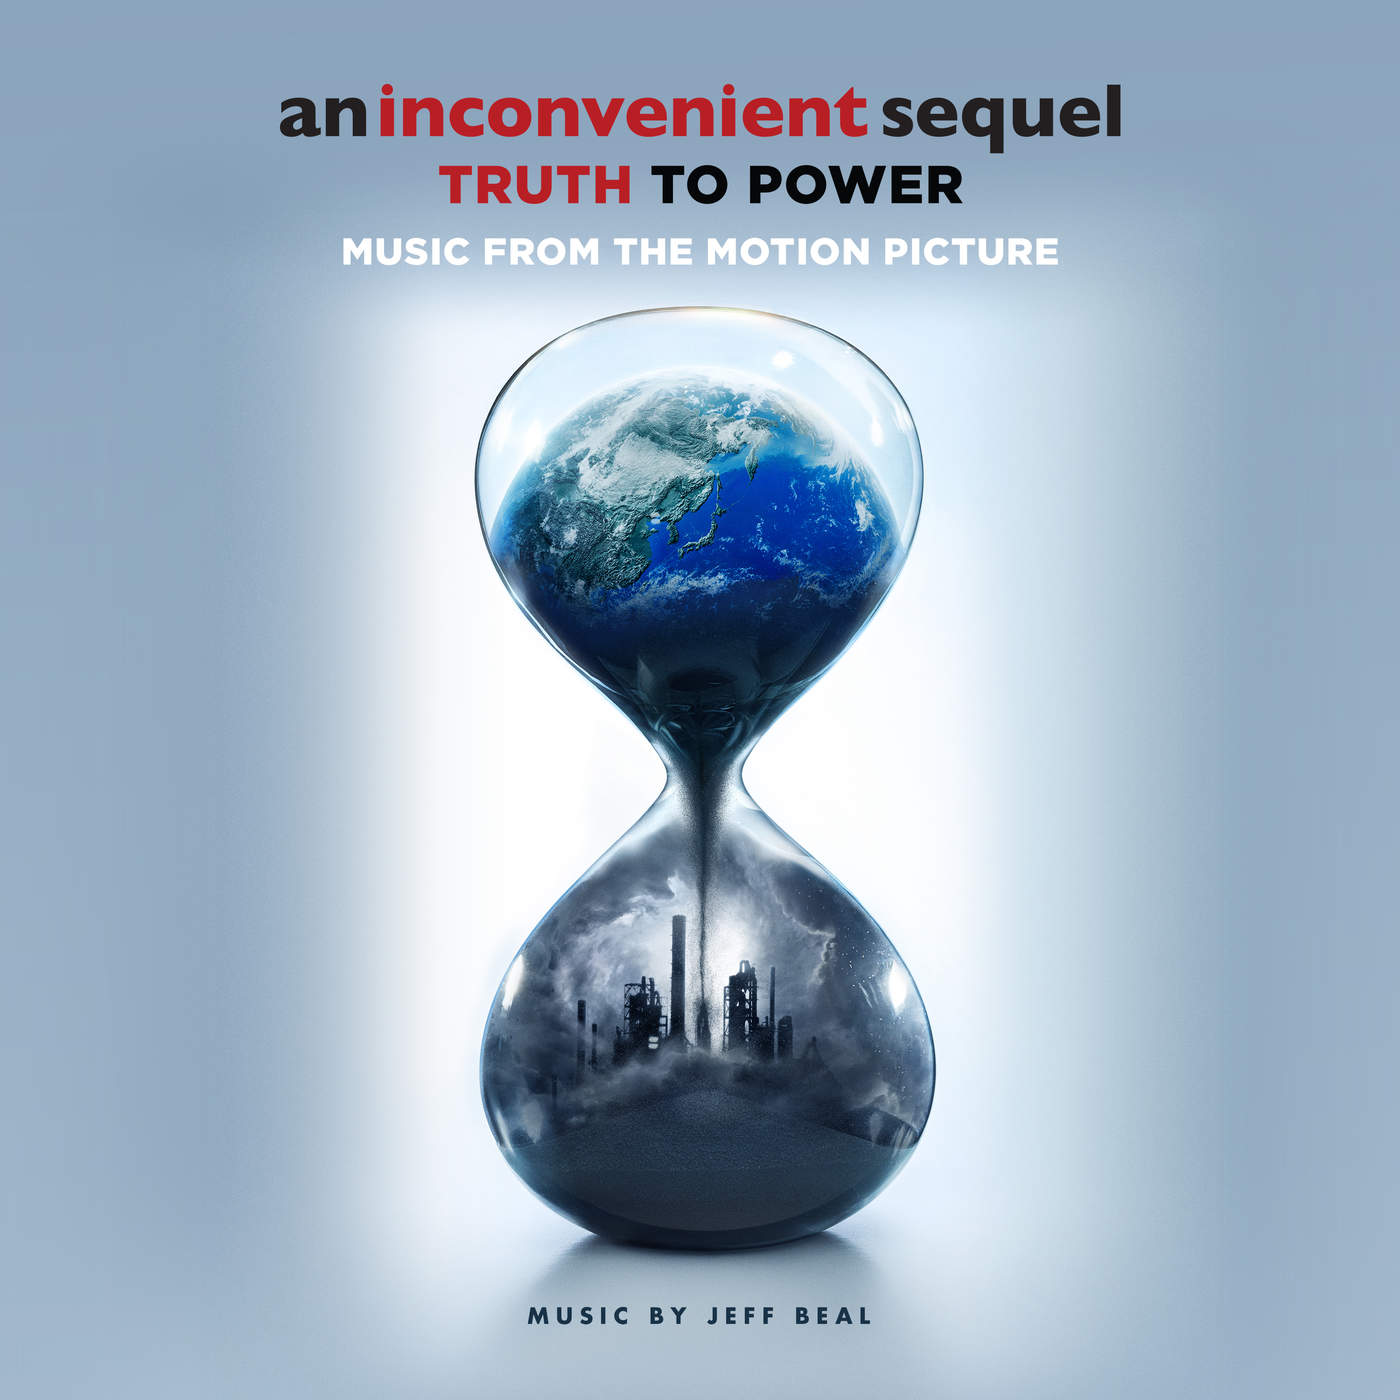 Jeff Beal - An Inconvenient Sequel: Truth to Power (Music from the Motion Picture)